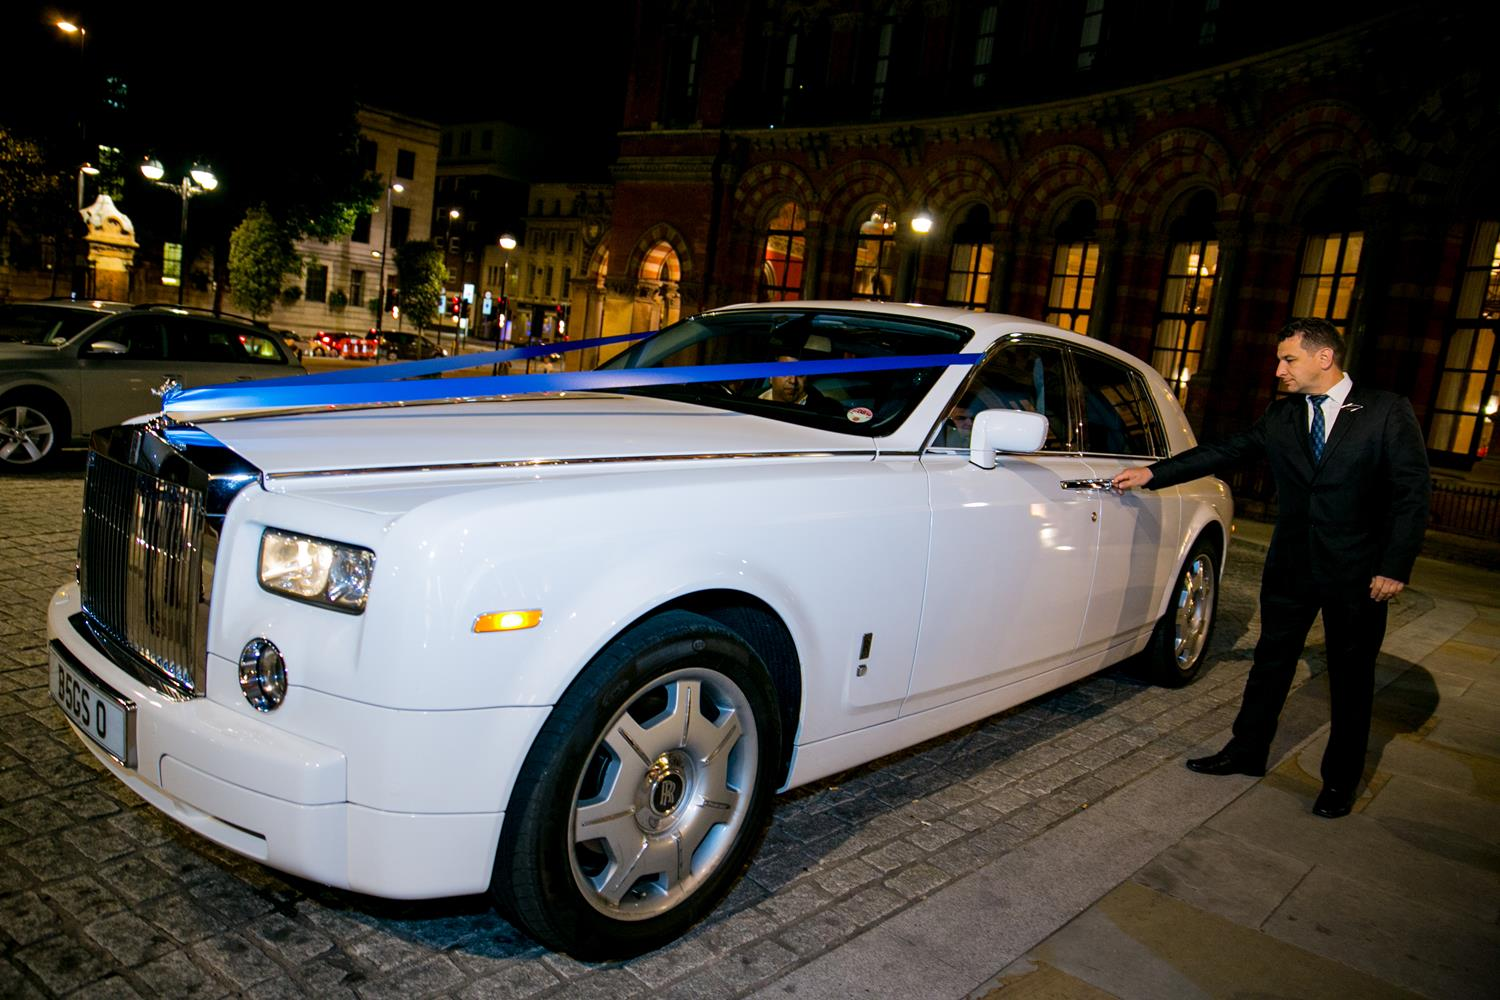 Wedding Photography of Rolls Royce outside London's Renaissance Hotel by MAKSAM Photographer London